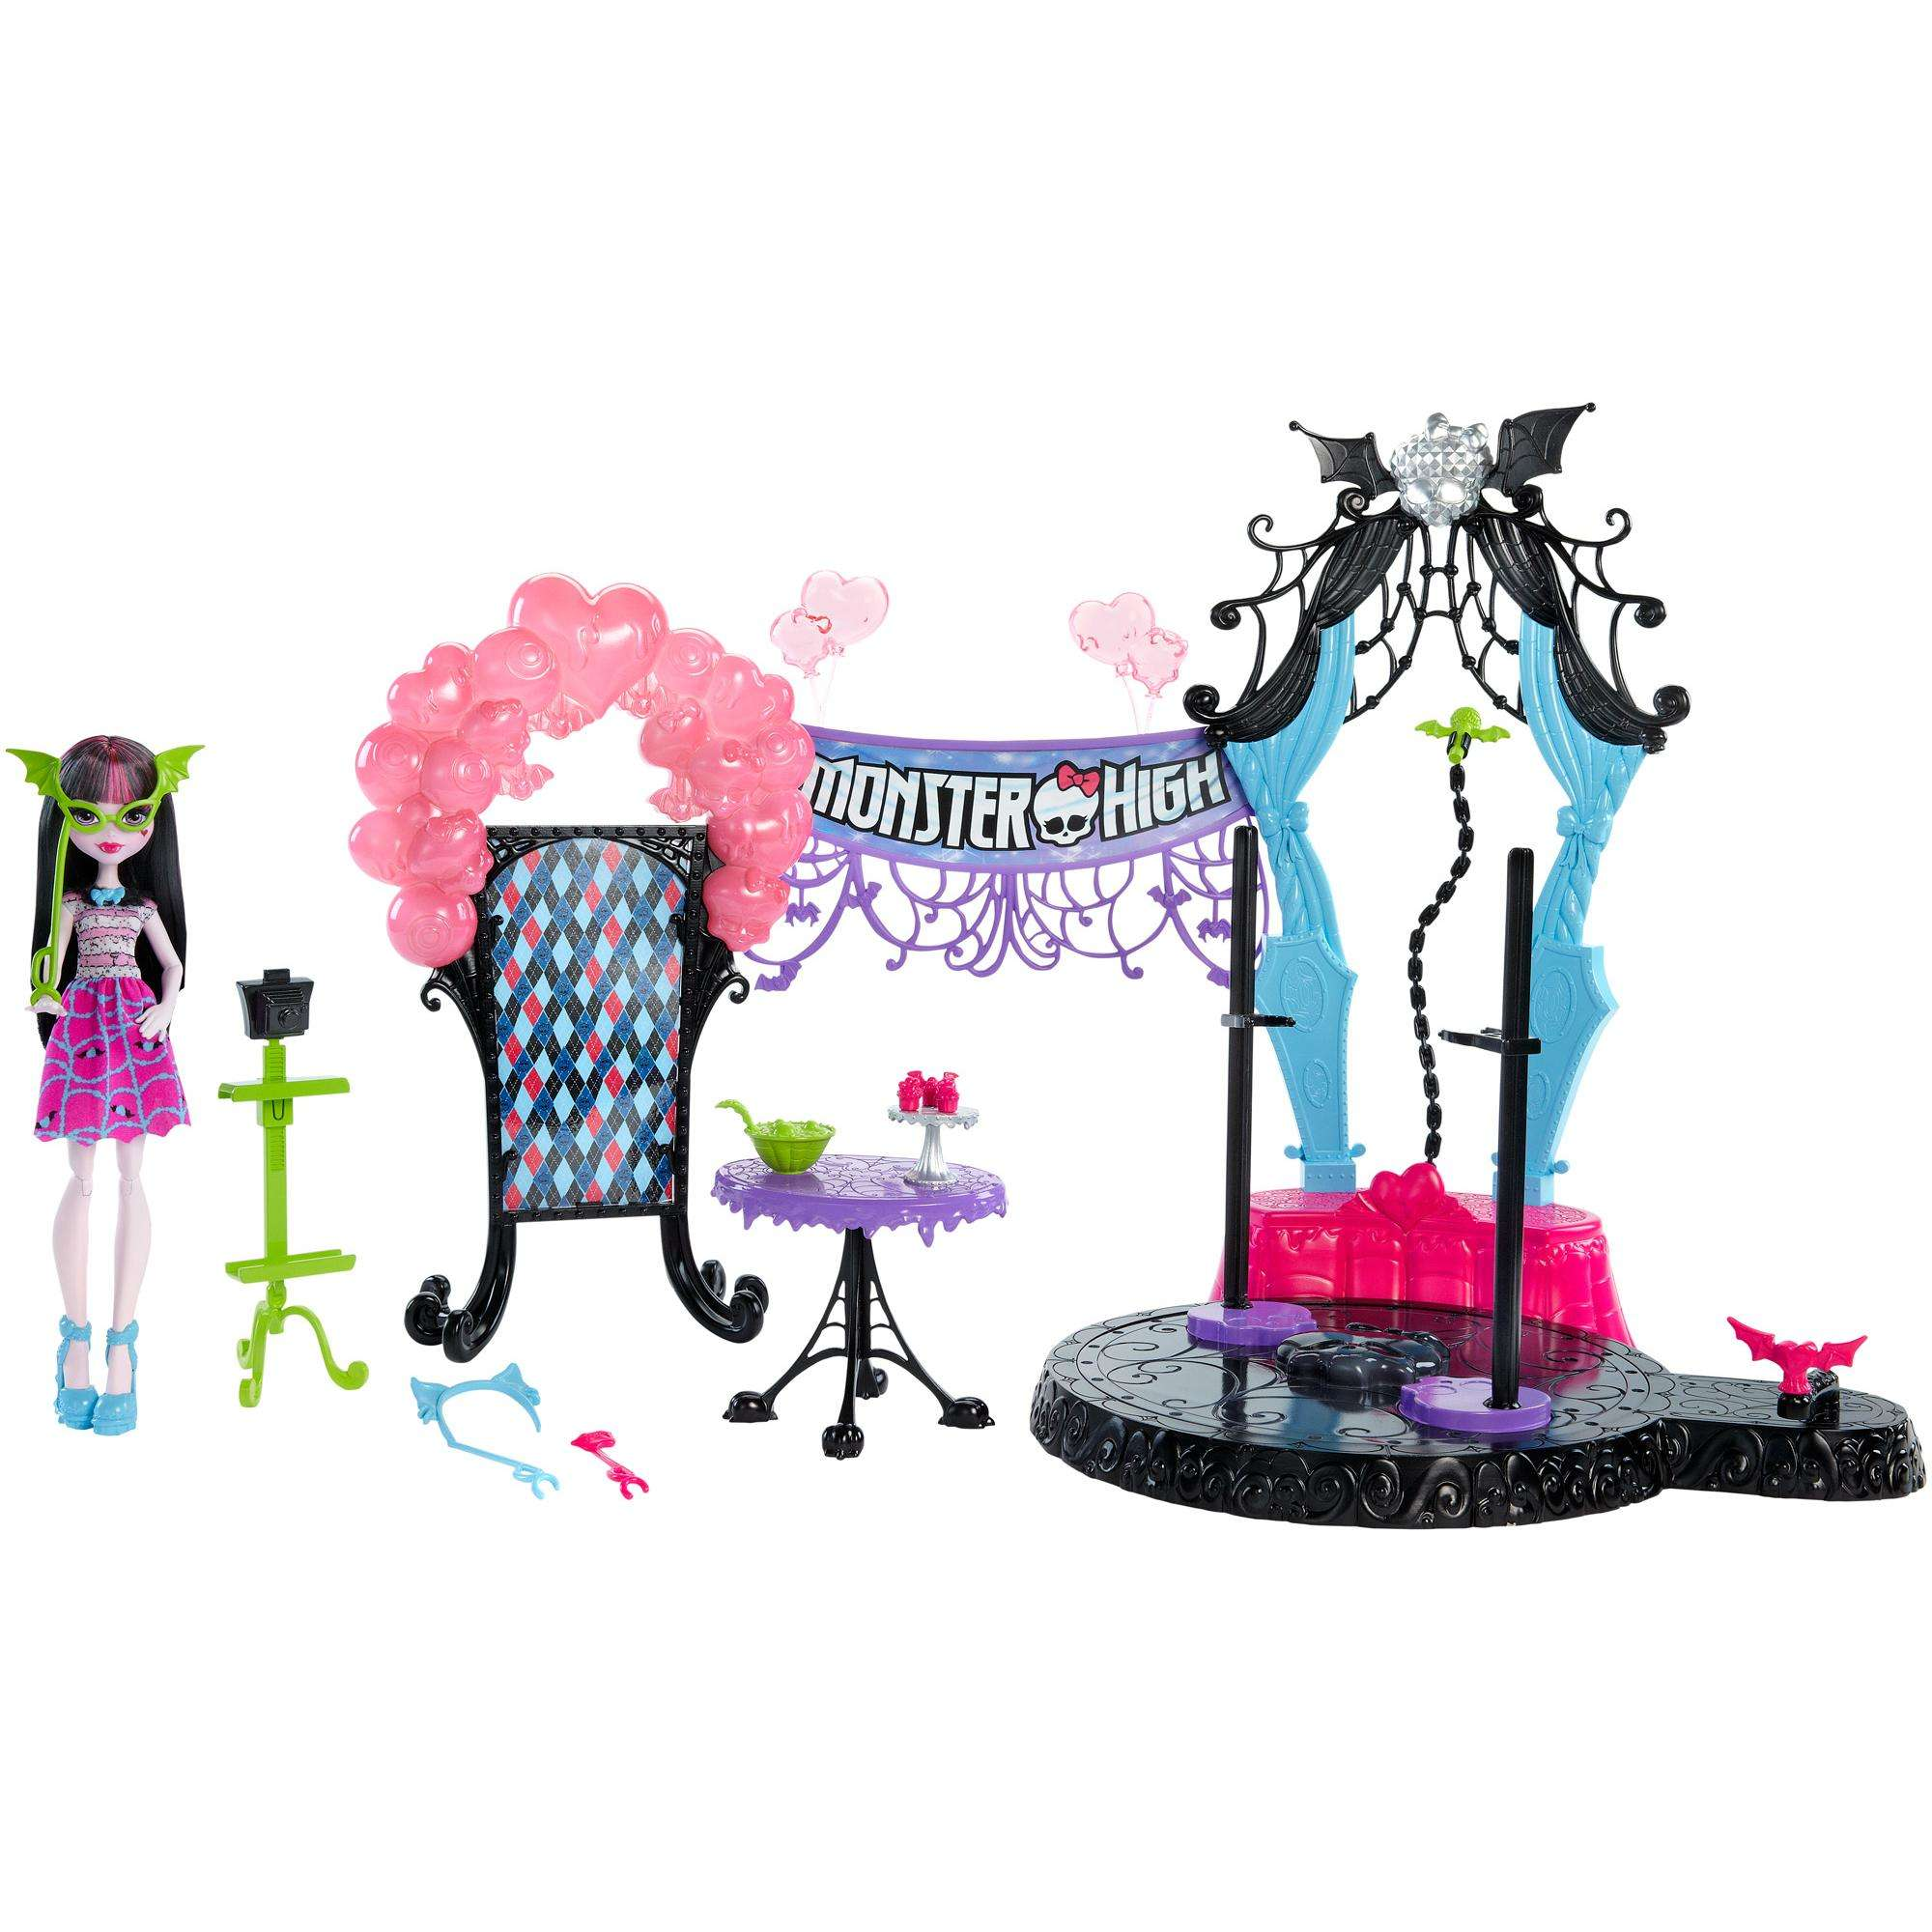 Monster High Welcome to Monster High Dance the Fright Away Playset by MATTEL INC.